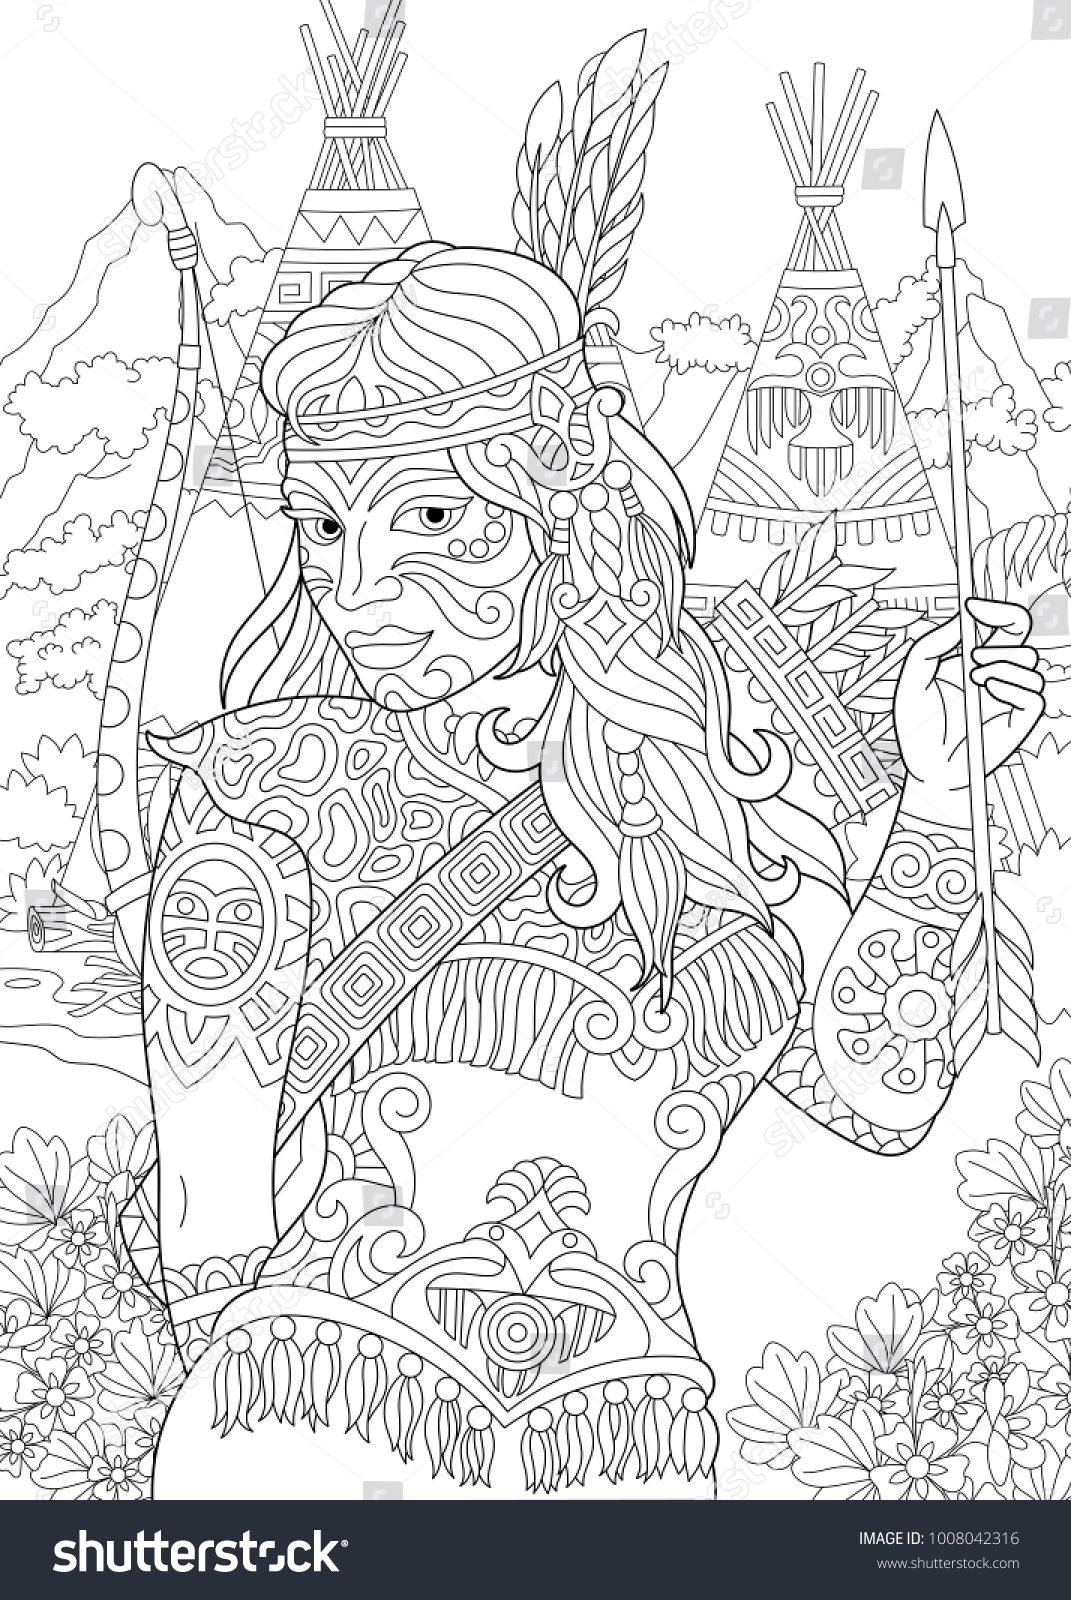 Coloring Page Adult Coloring Book Native American Indian Woman